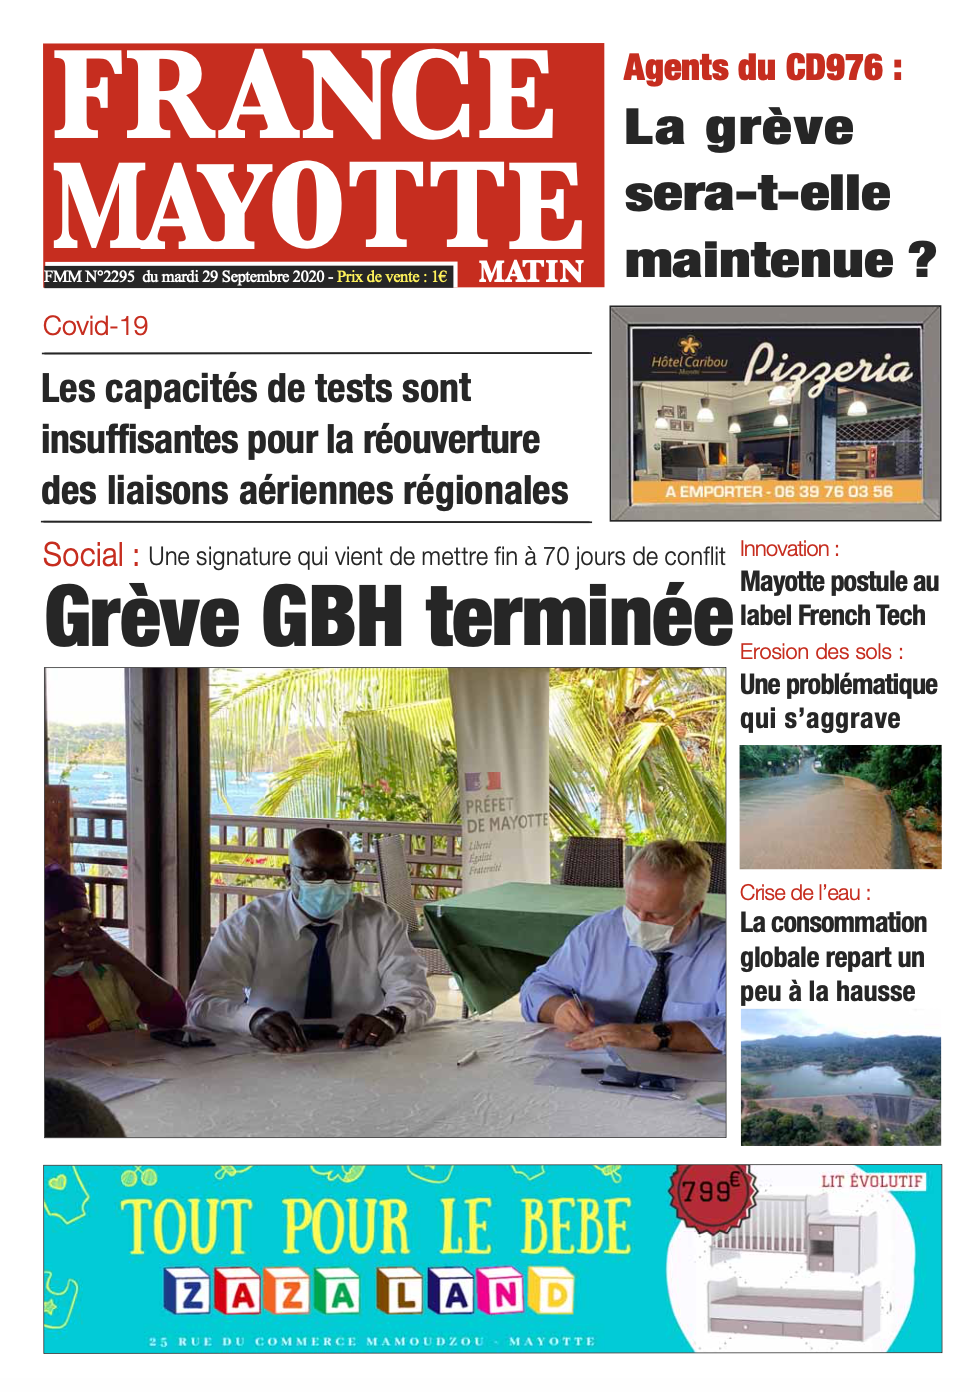 France Mayotte Mardi 29 septembre 2020